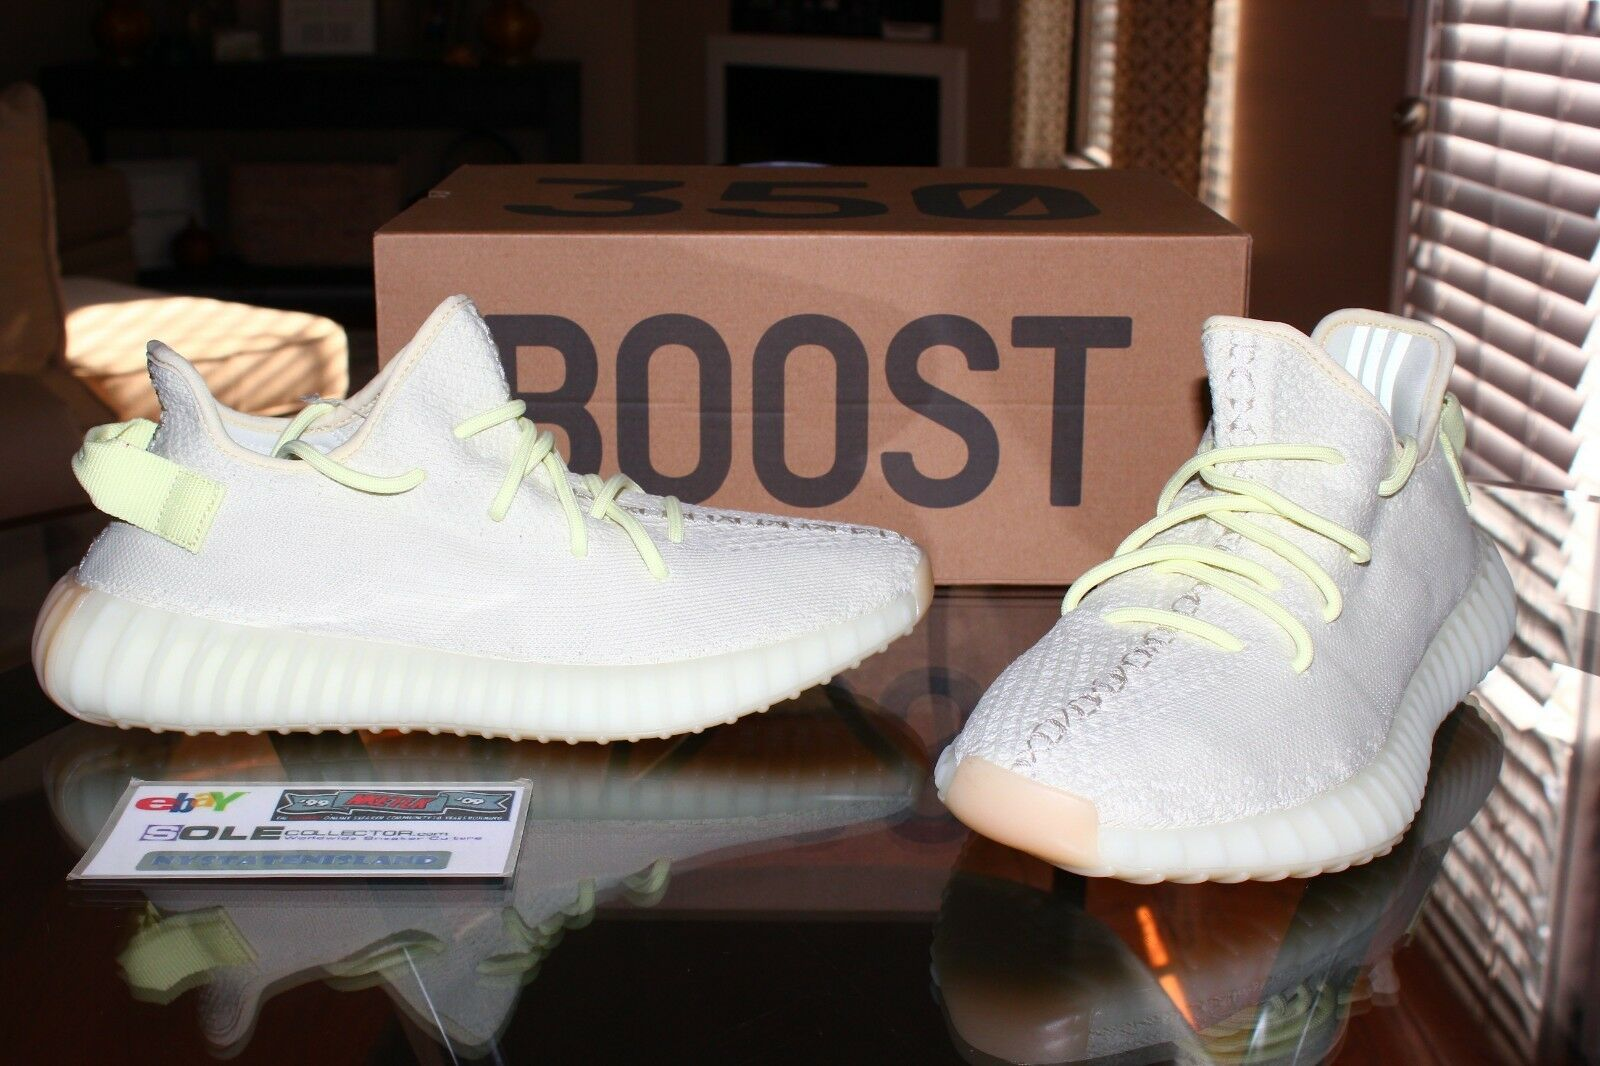 658bc423bfc8 adidas Yeezy Boost 350 V2 Butter 11 for sale online